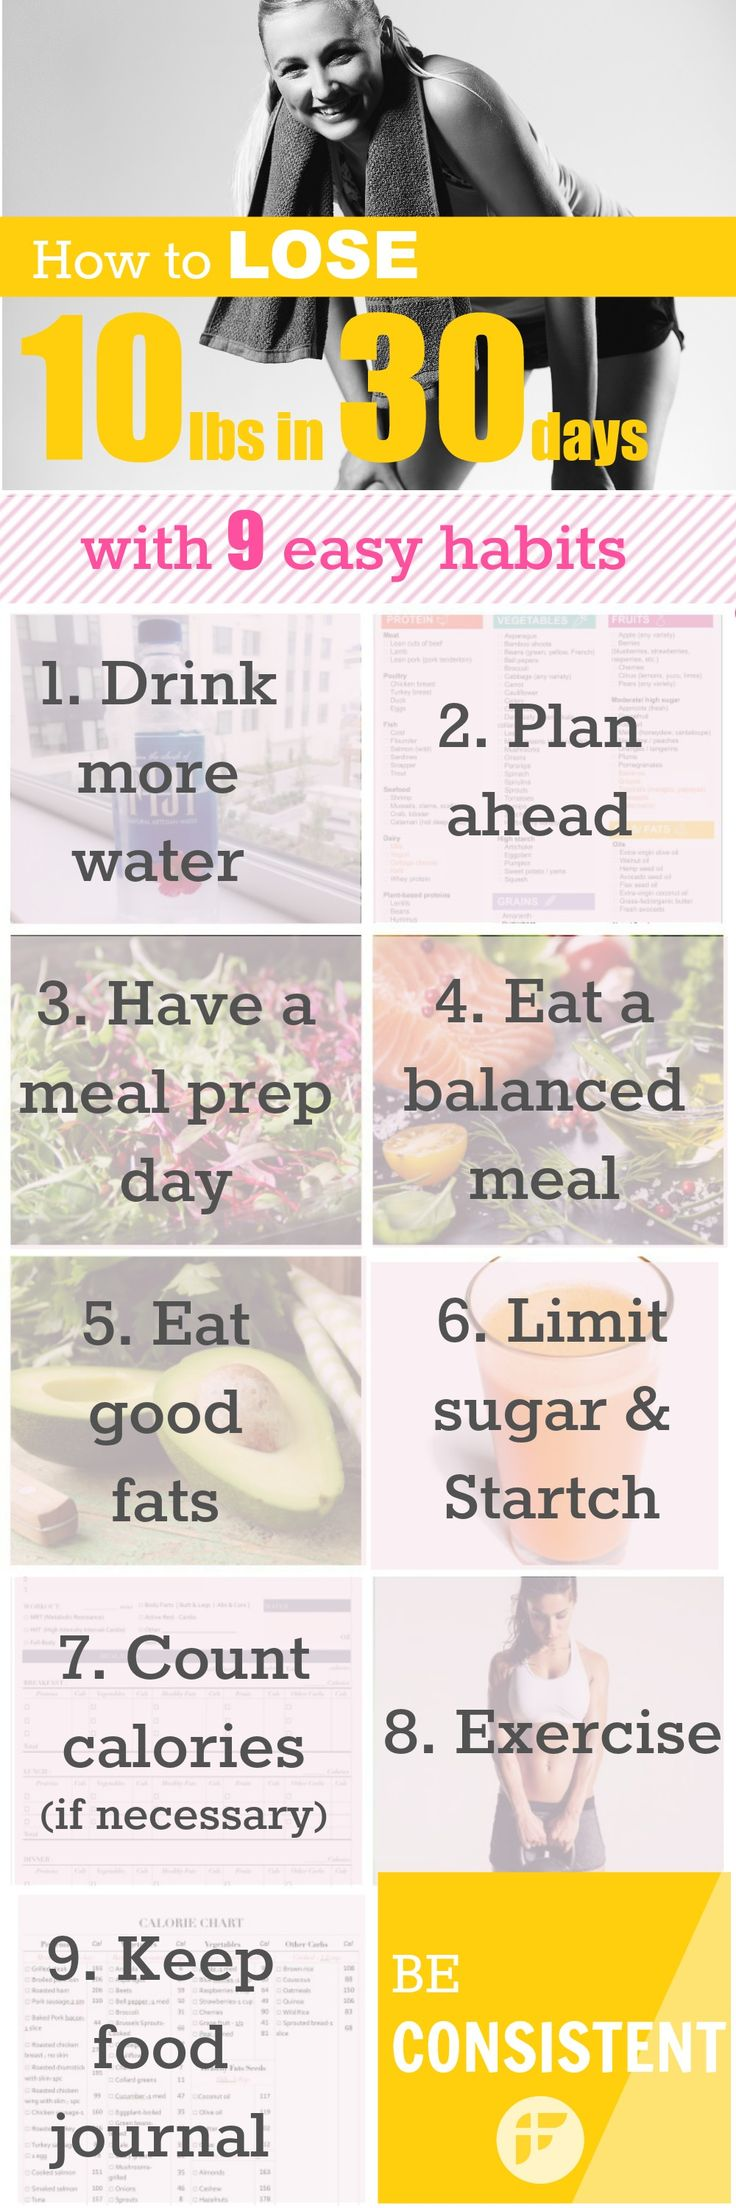 9 habits to lose 10 pounds in 30 days. Losing 10 pounds is actually easier than you think. #loseweight #weightloss